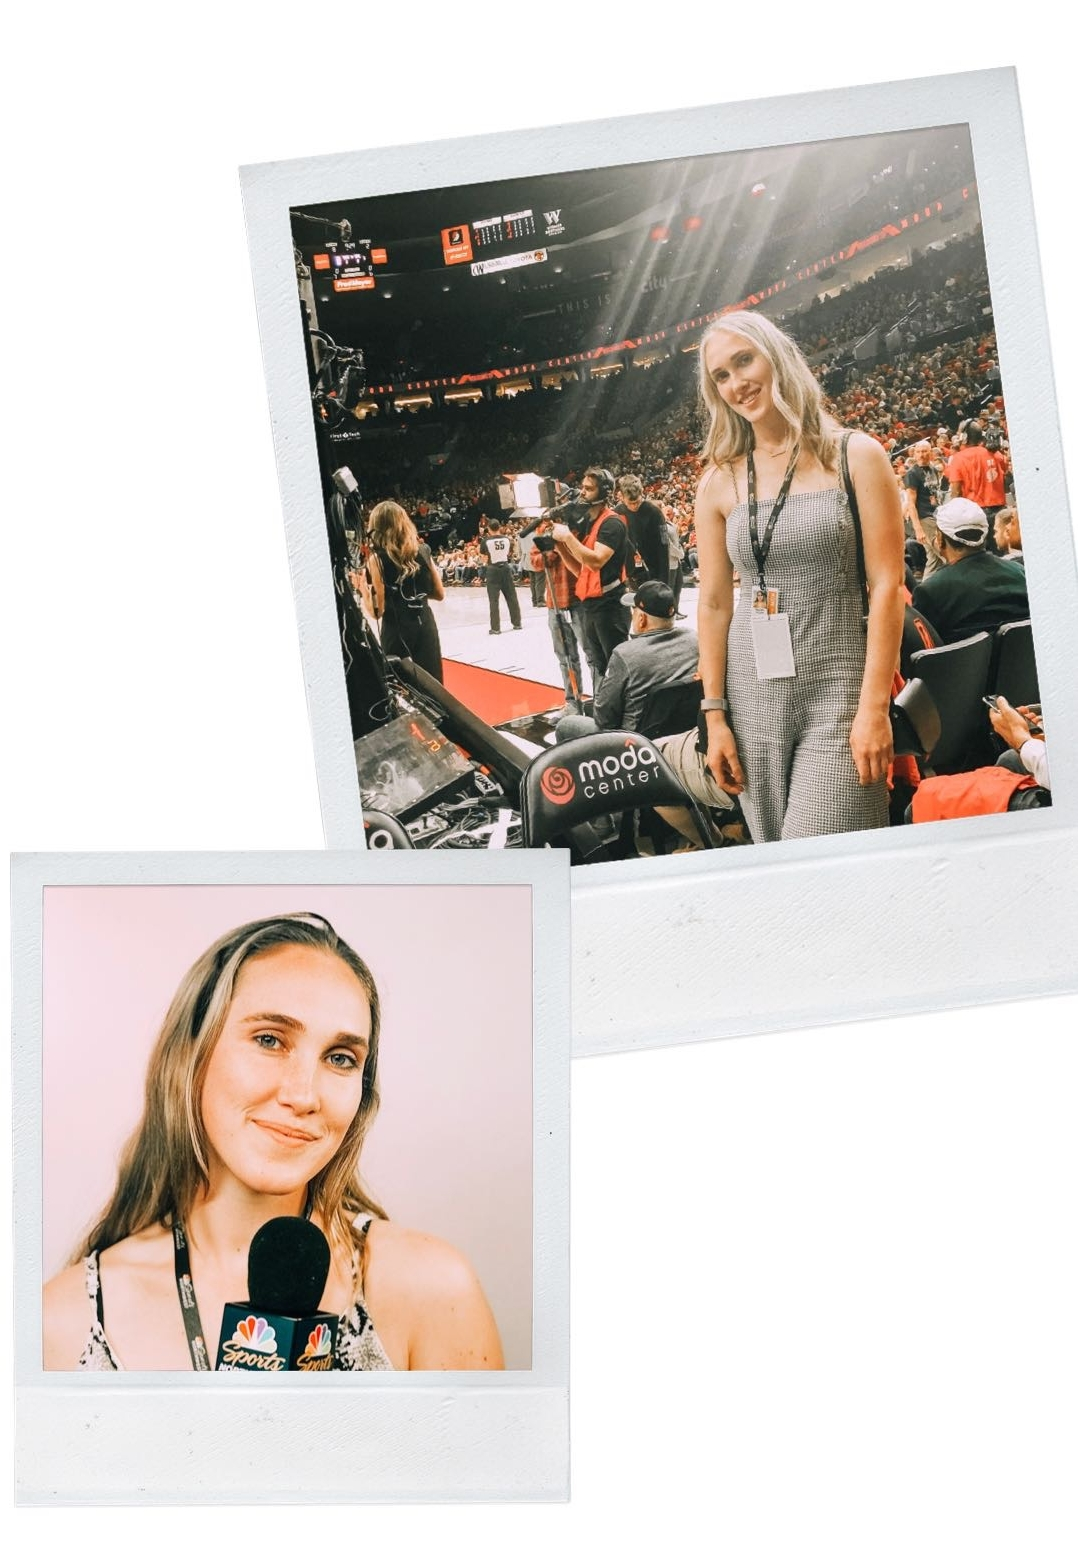 #girlboss - Like I mentioned at the beginning of this post, I've been interning at NBC sports in the marketing department. These two photos are from work events; the top photo is from a basketball game and the bottom is from when I helped conduct interviews at a fan event. I have had the best experience interning so far and I can't wait for what's in store! Keep your eyes peeled for more intern related posts soon!!